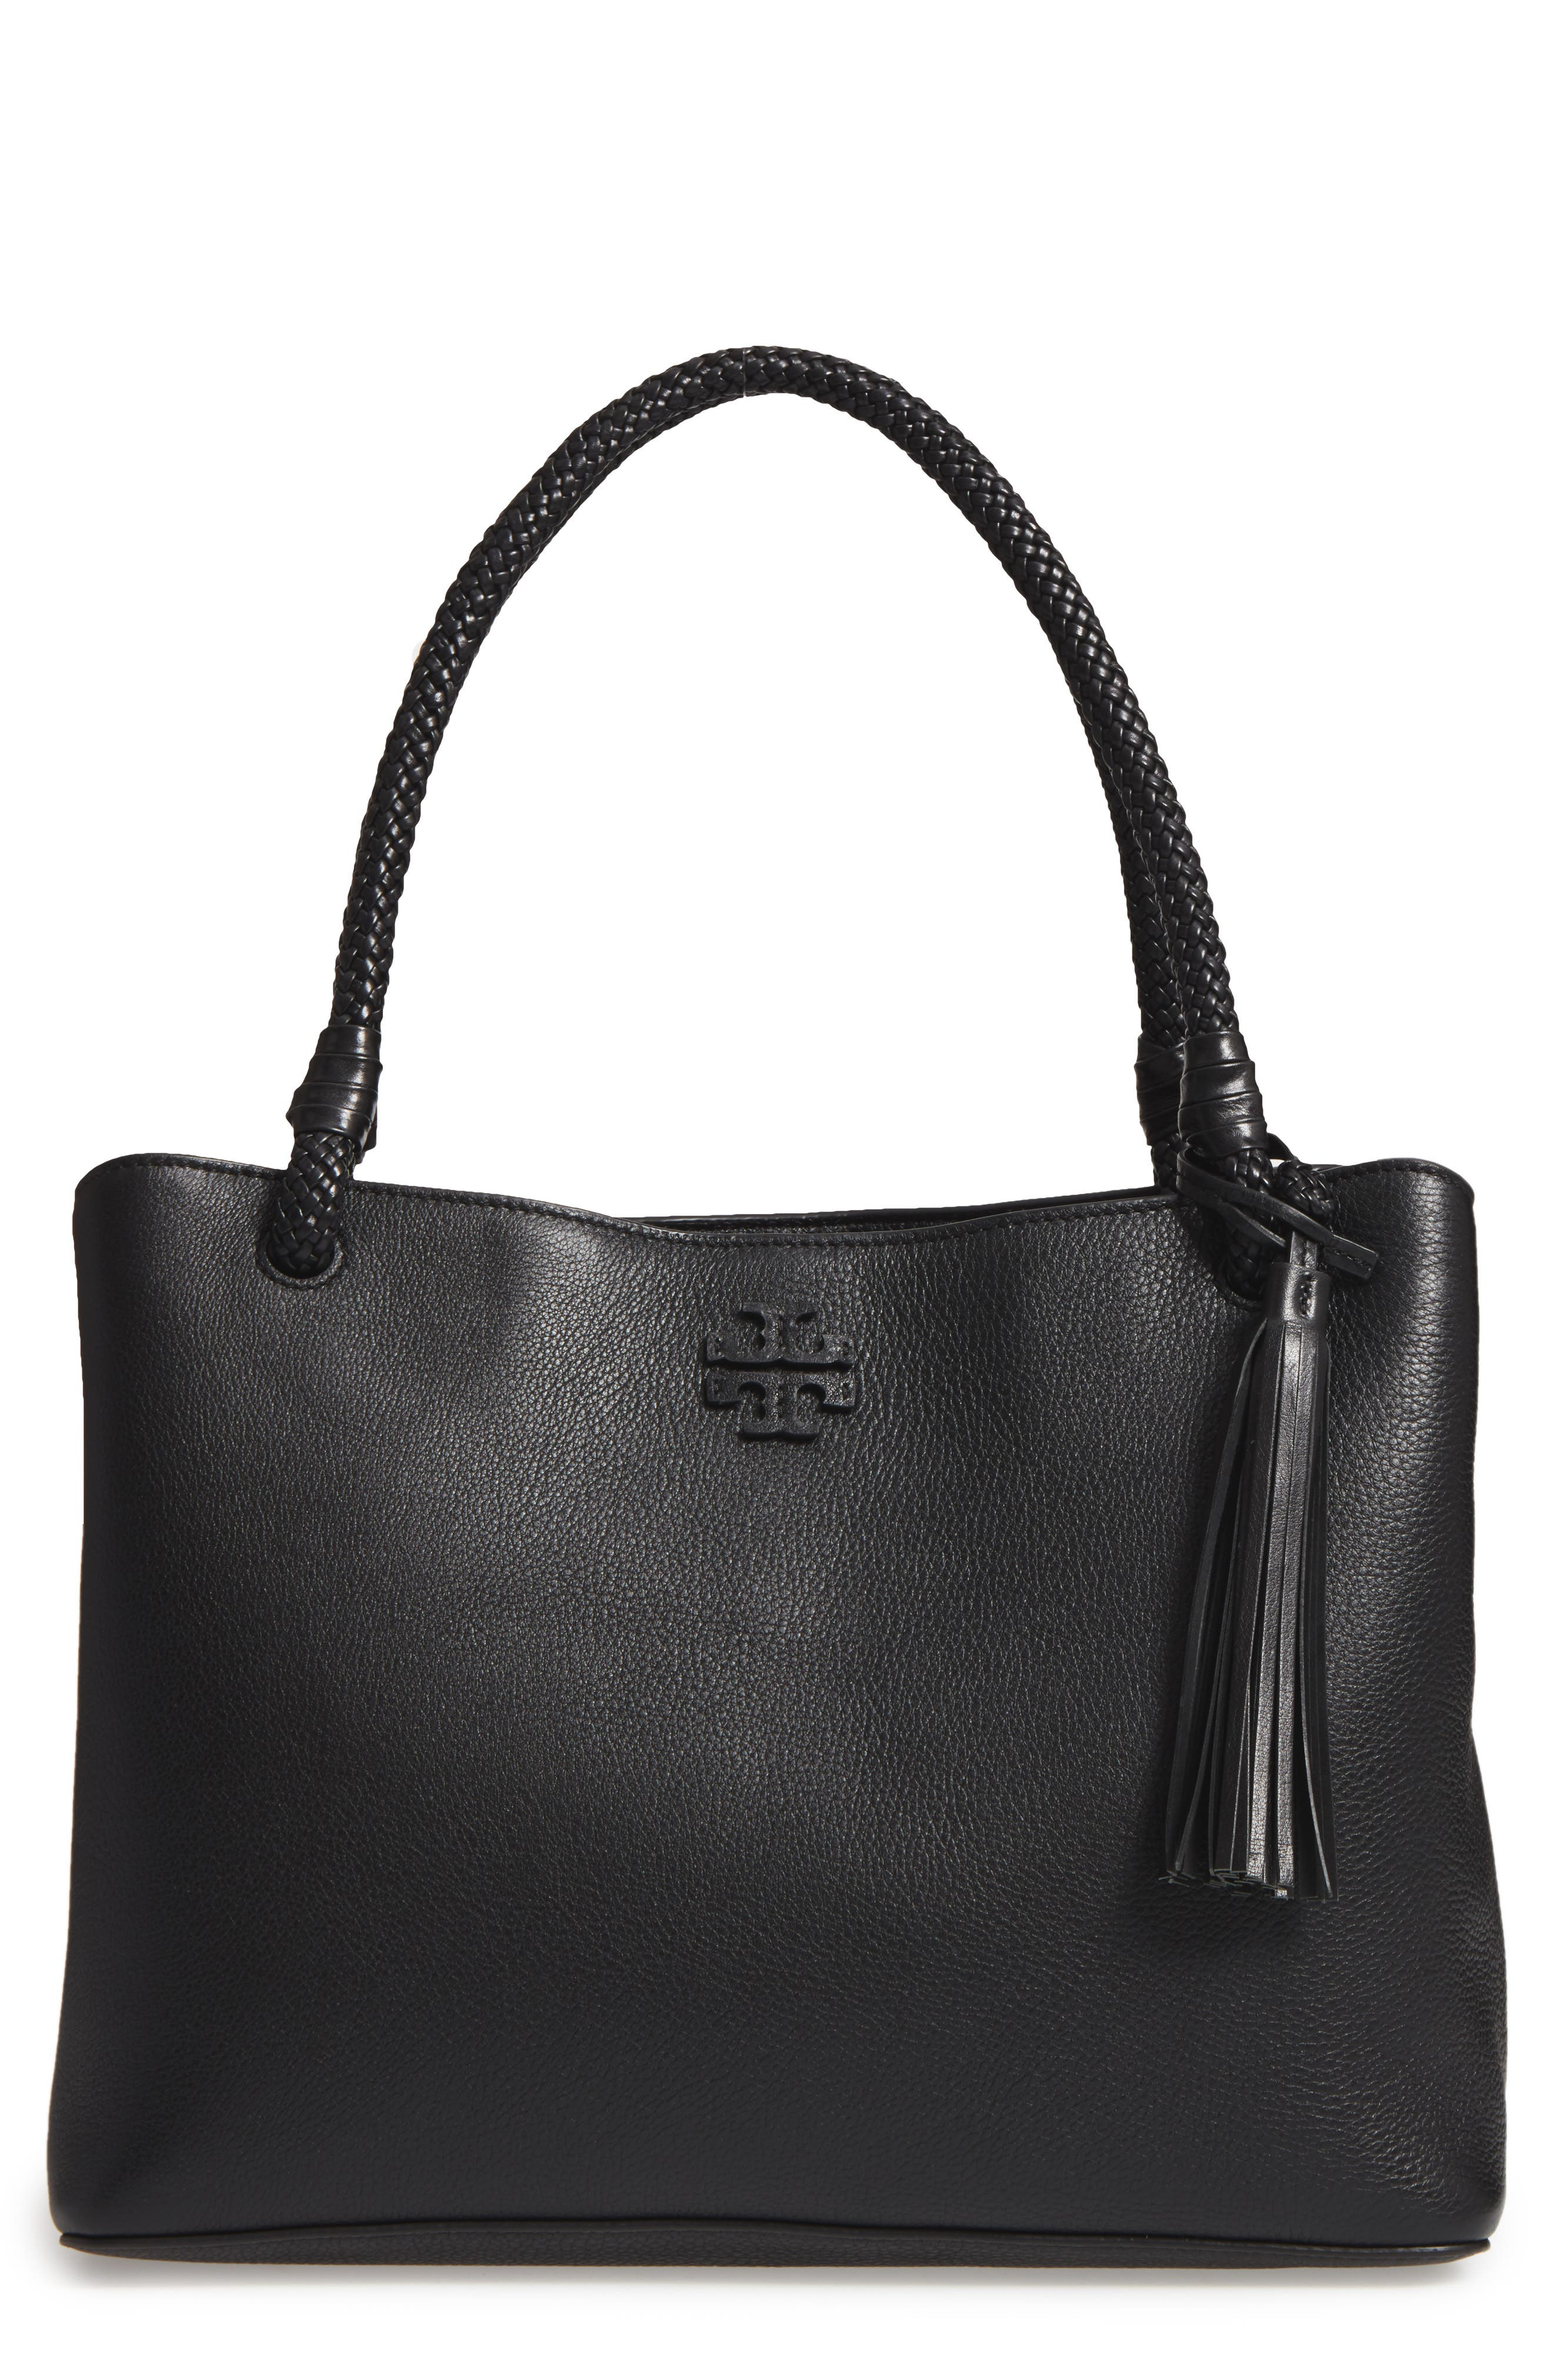 Taylor Triple-Compartment Leather Tote, Main, color, 001